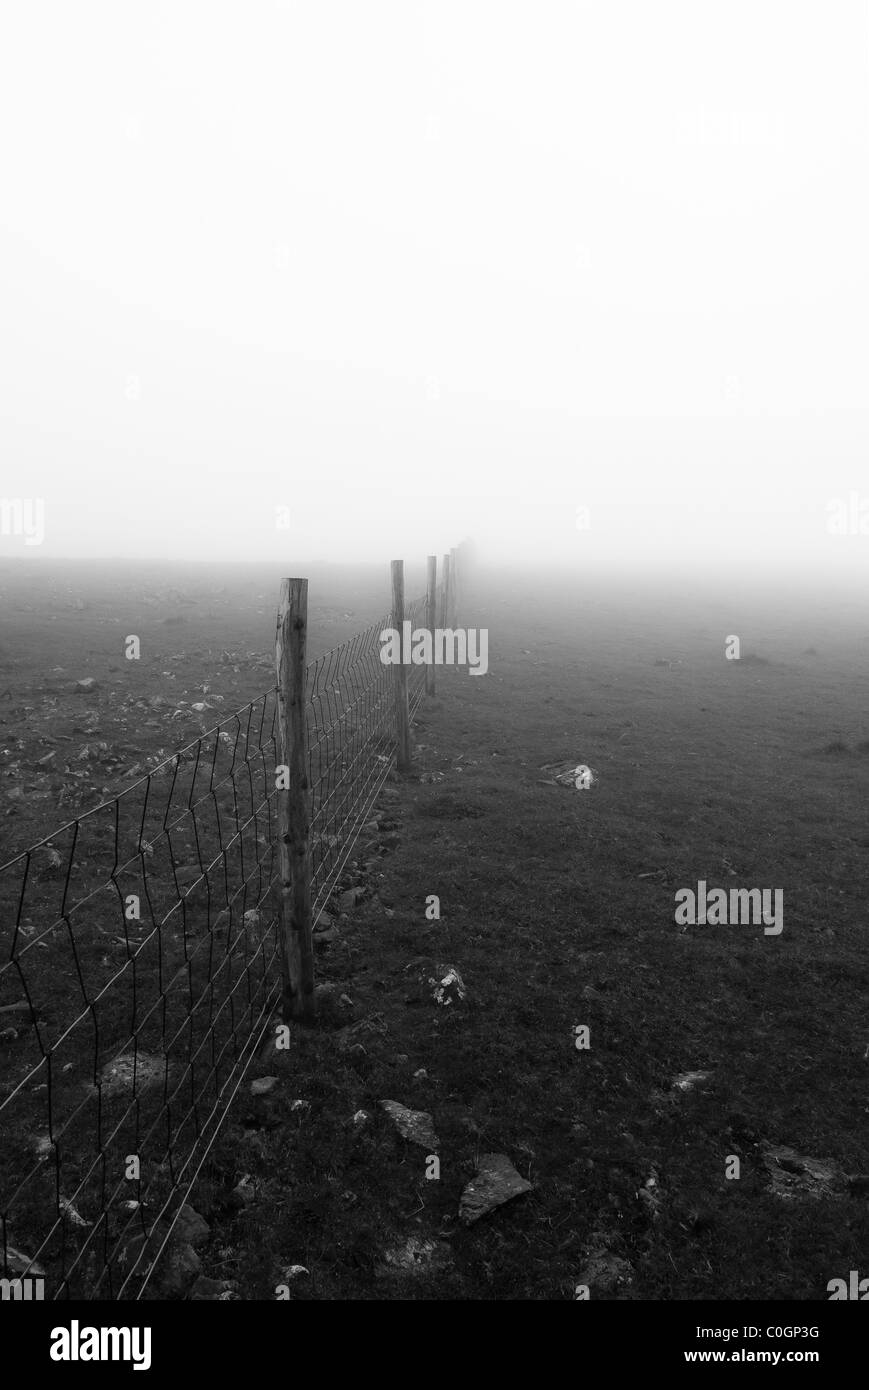 Wire fence disappearing into mist, copyspace - Stock Image